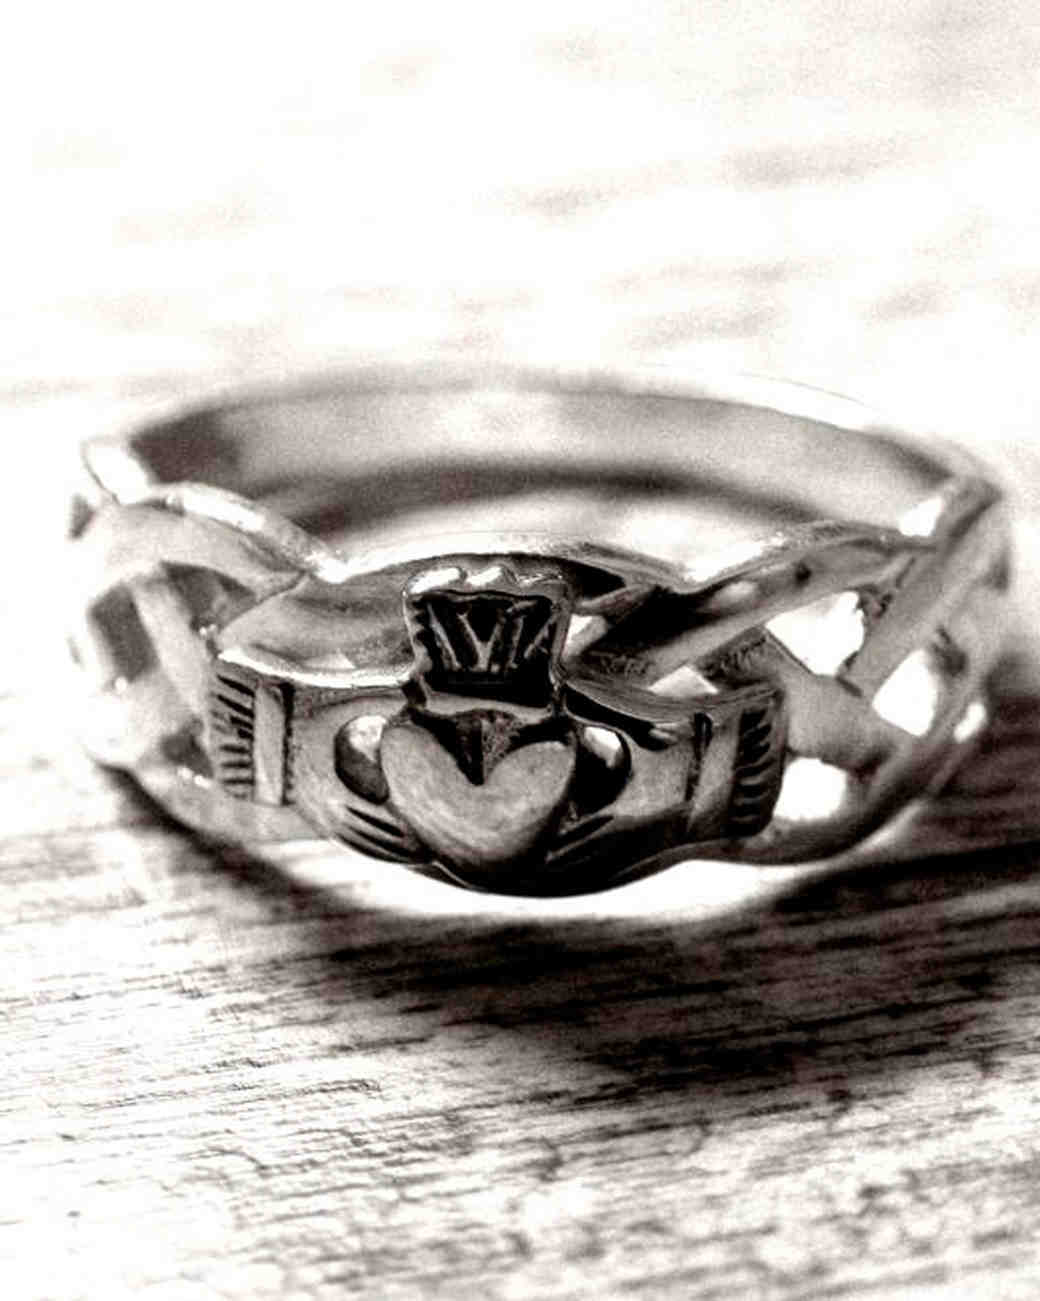 irish-wedding-tradition-claddagh-ring-0315-1.jpg